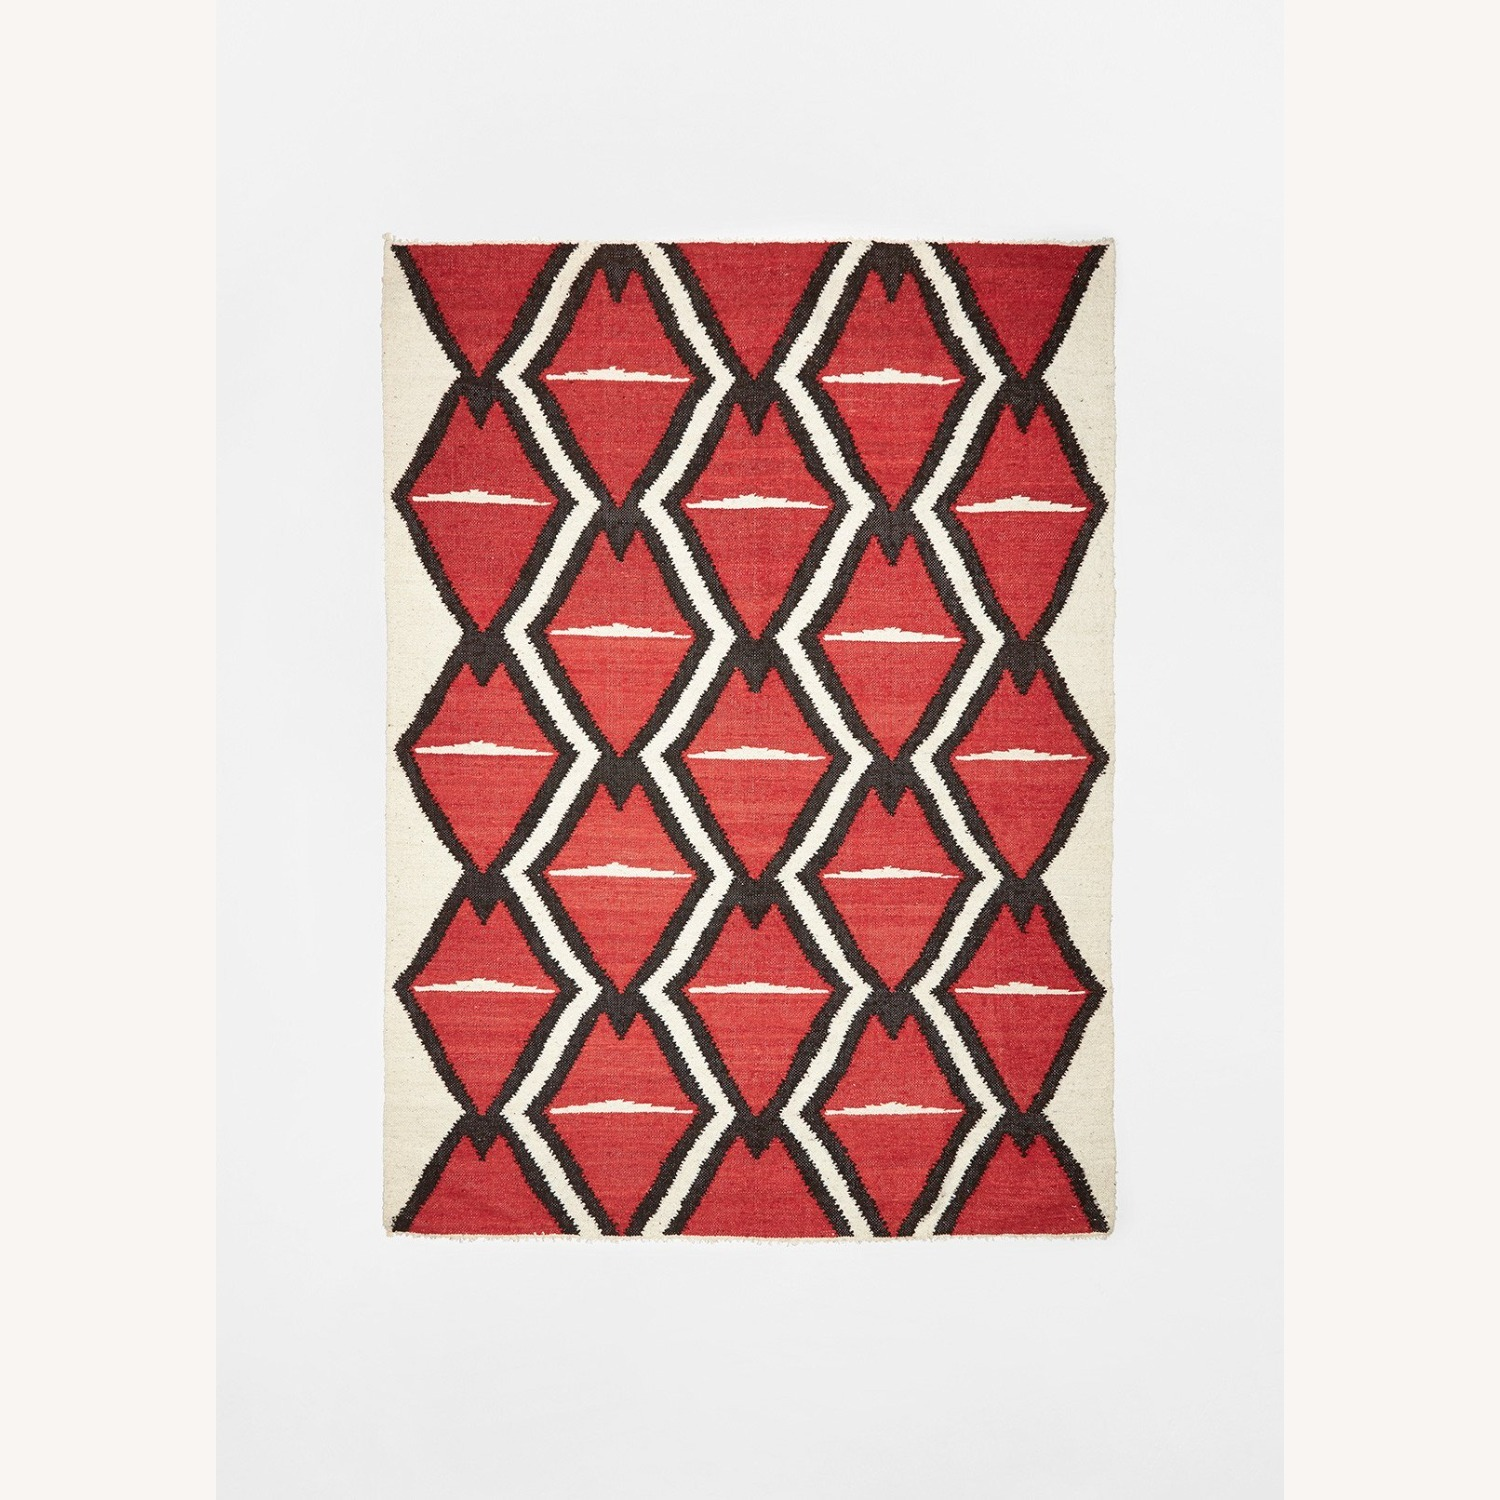 Artisan Rug featured in Elle Decor - image-1